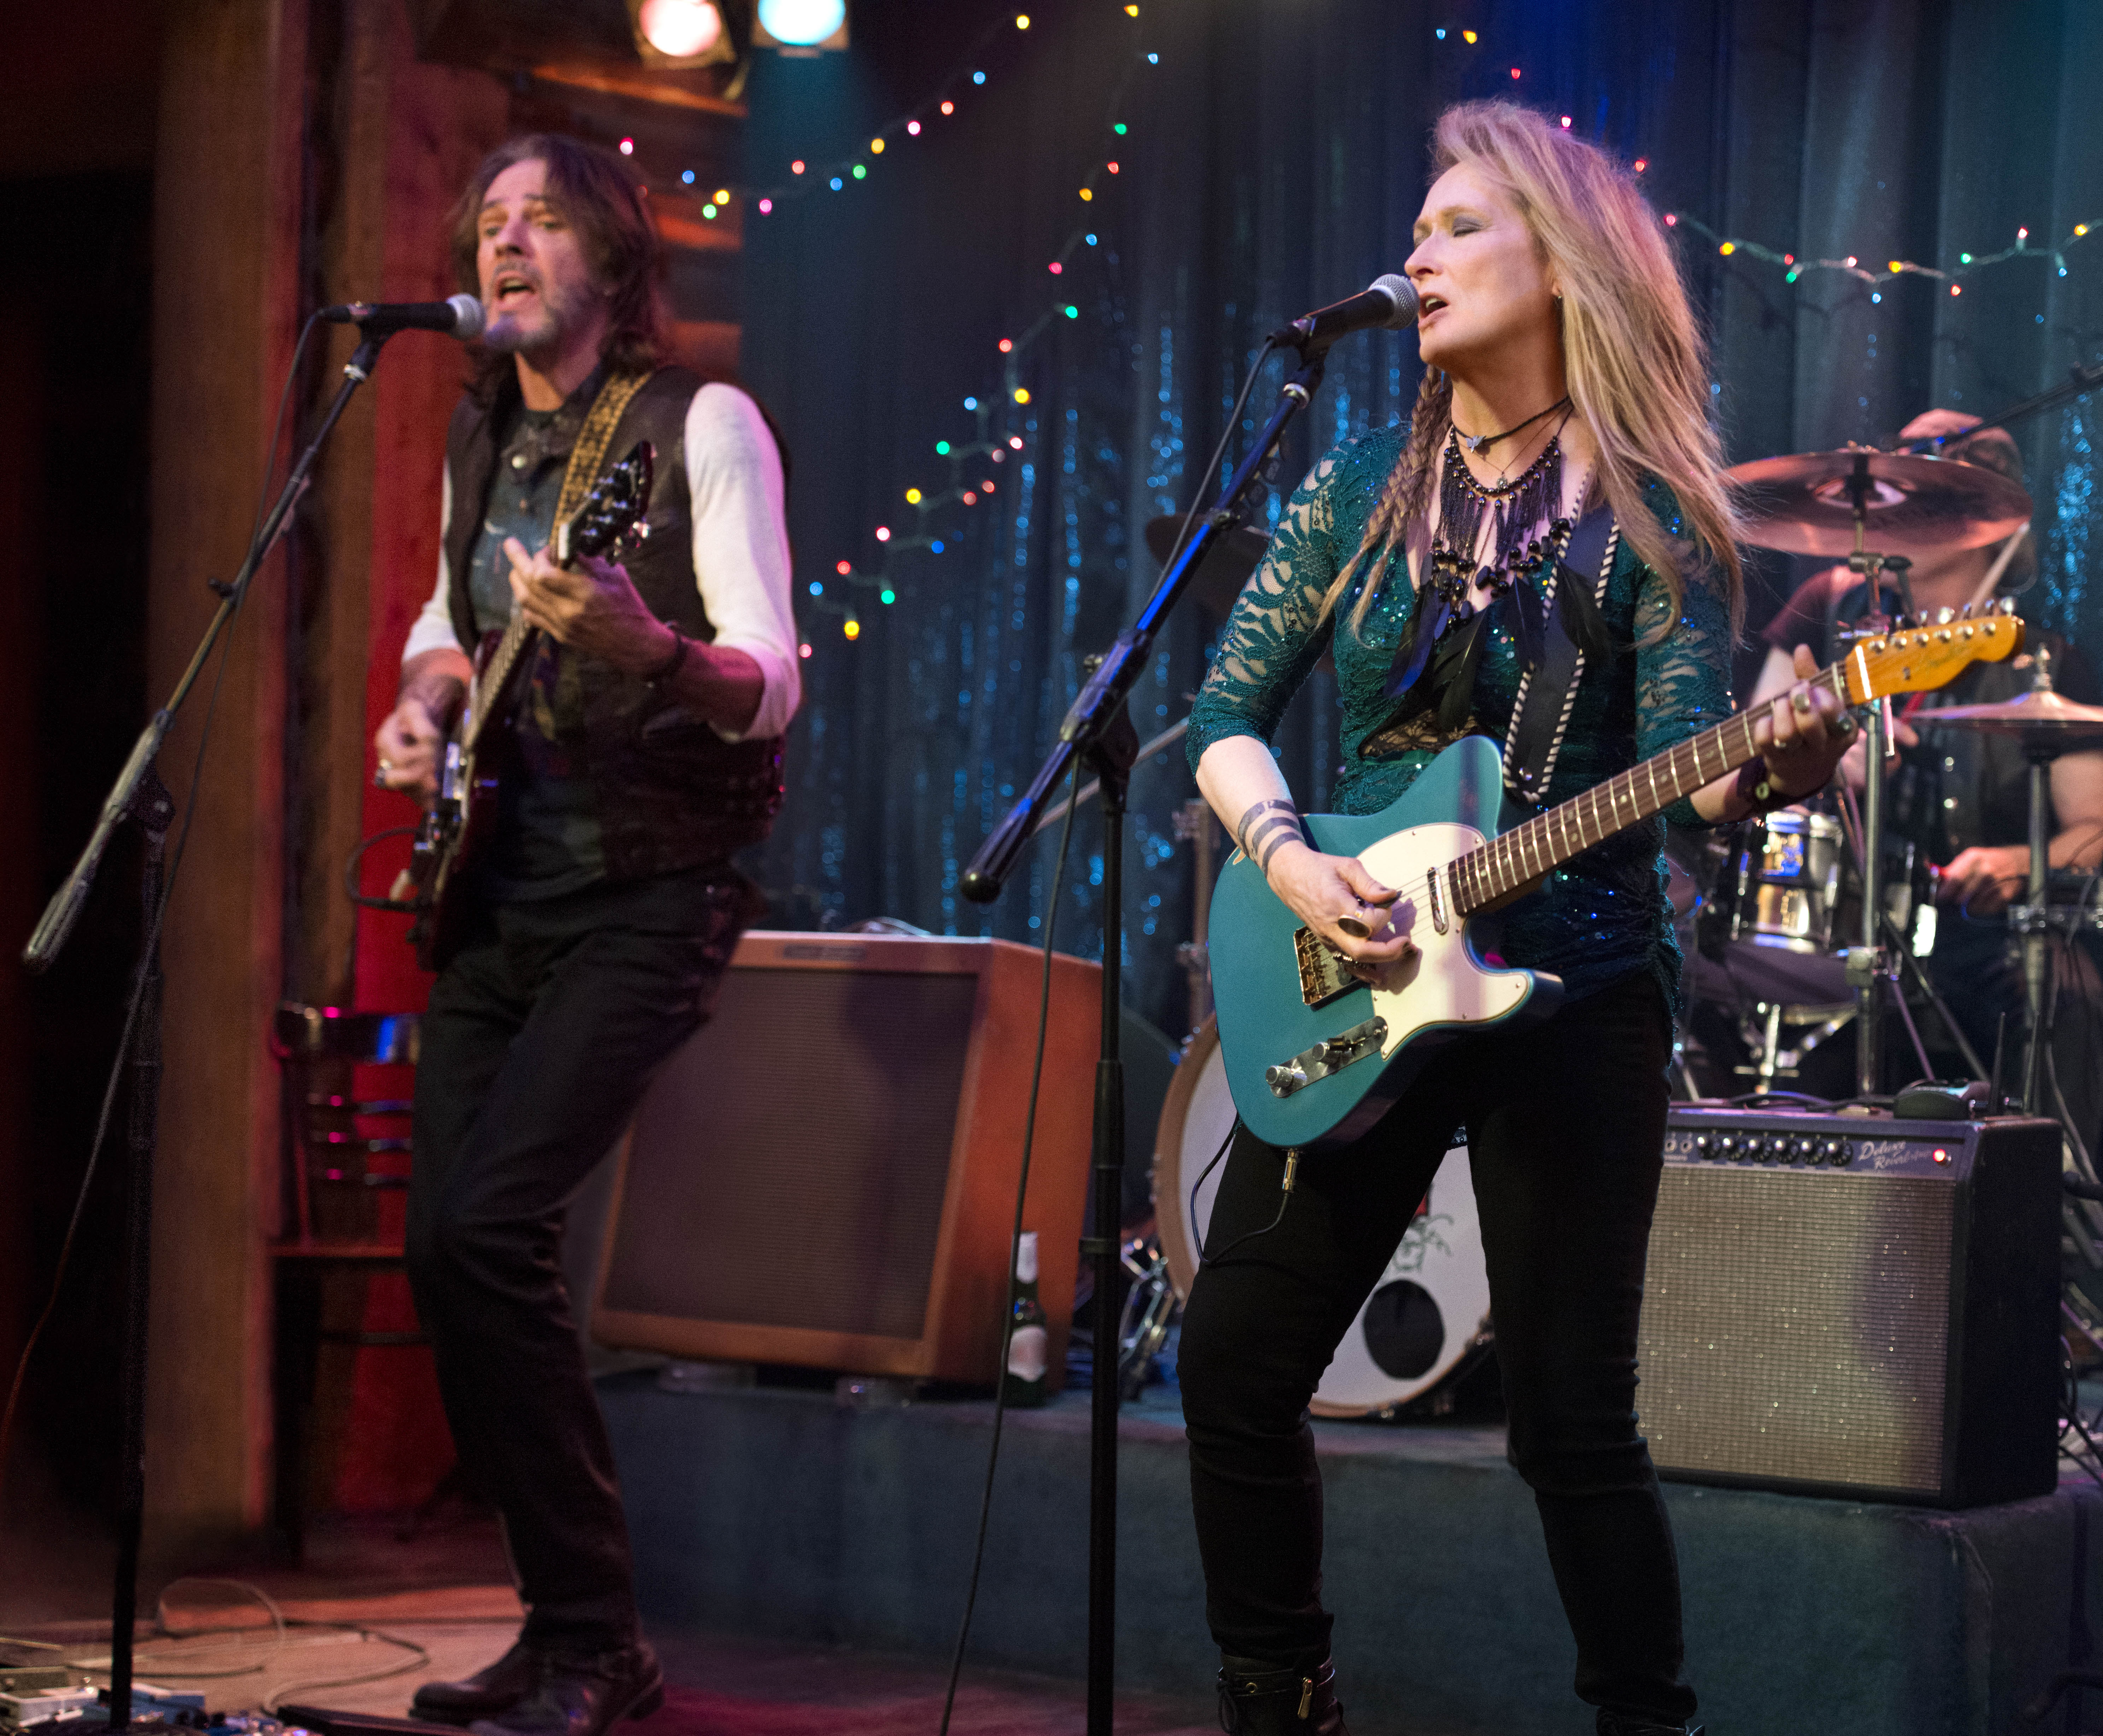 Meryl Streep and Rick Springfield in Ricki and the Flash (2015)